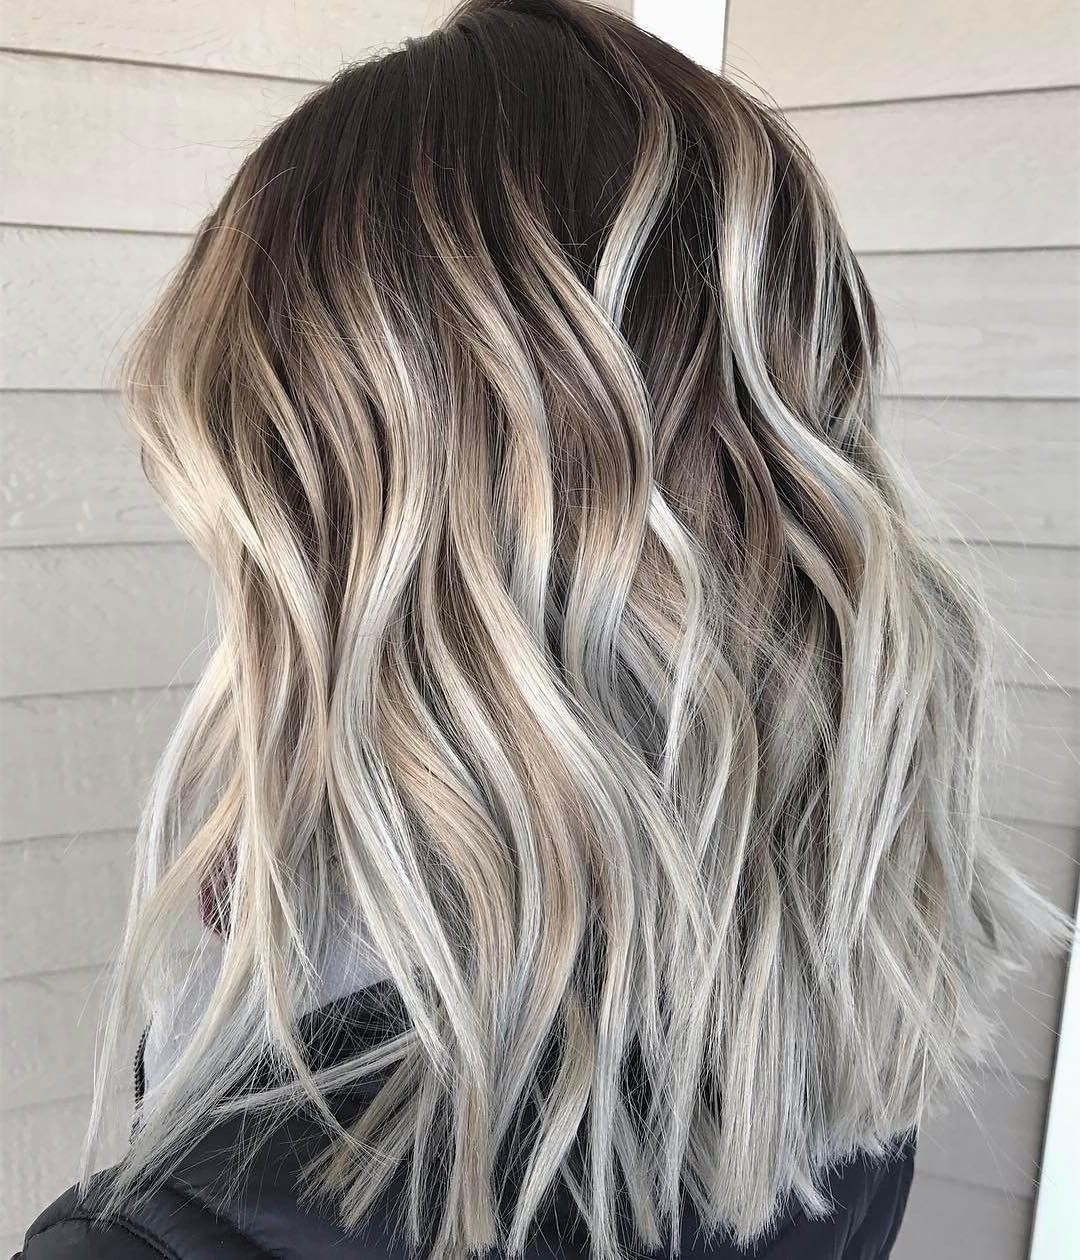 Most Recent Icy Ombre Waves Blonde Hairstyles Throughout 10 Best Medium Hairstyles For Women – Shoulder Length Hair Cuts (View 11 of 20)